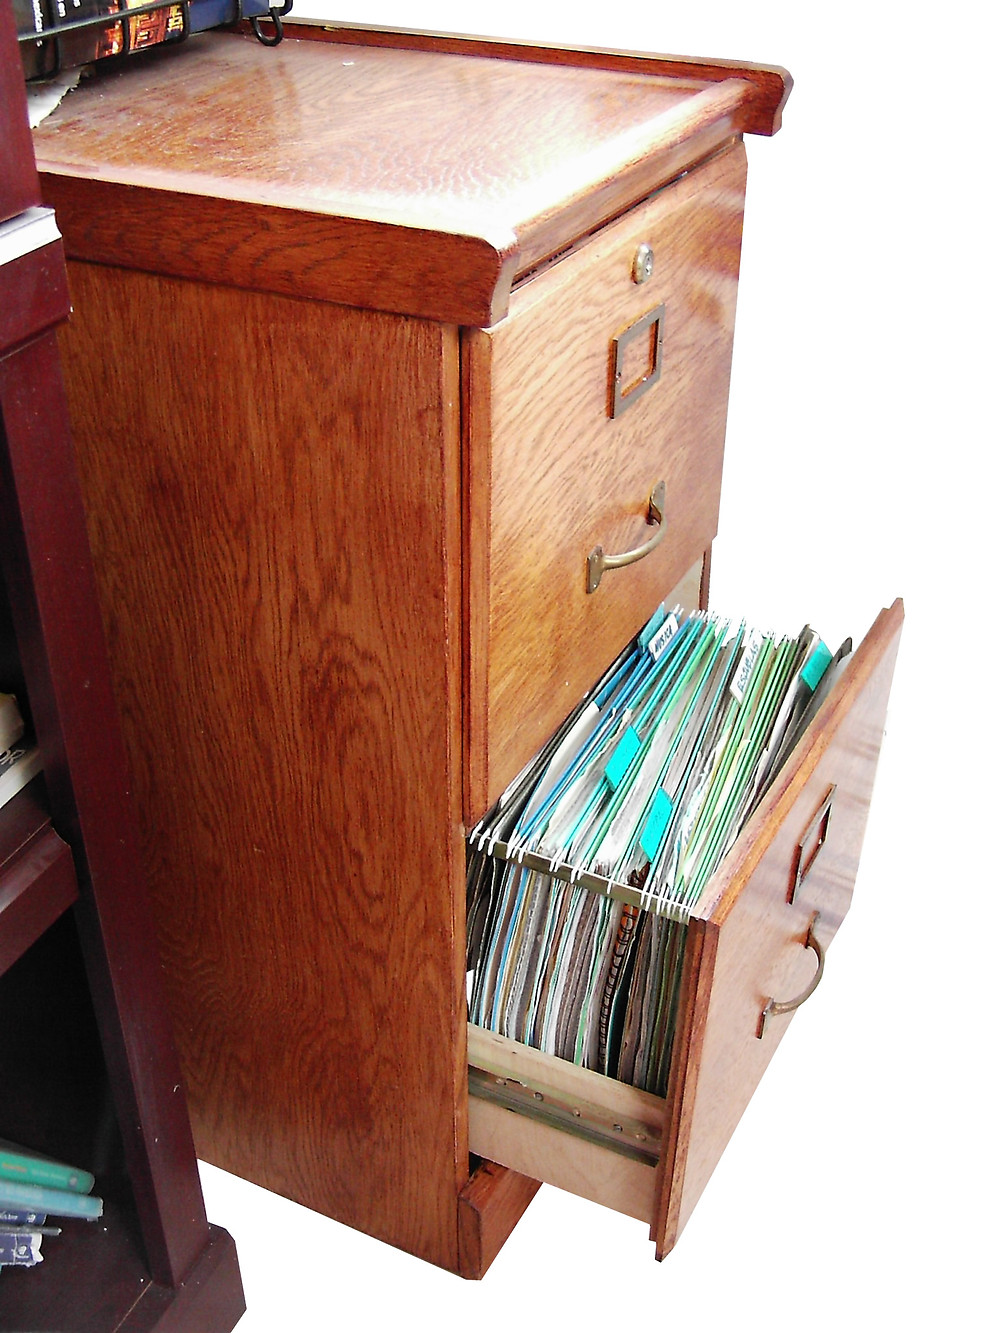 Efficient Filing Systems 101 - Wooden filing cabinet with drawer open